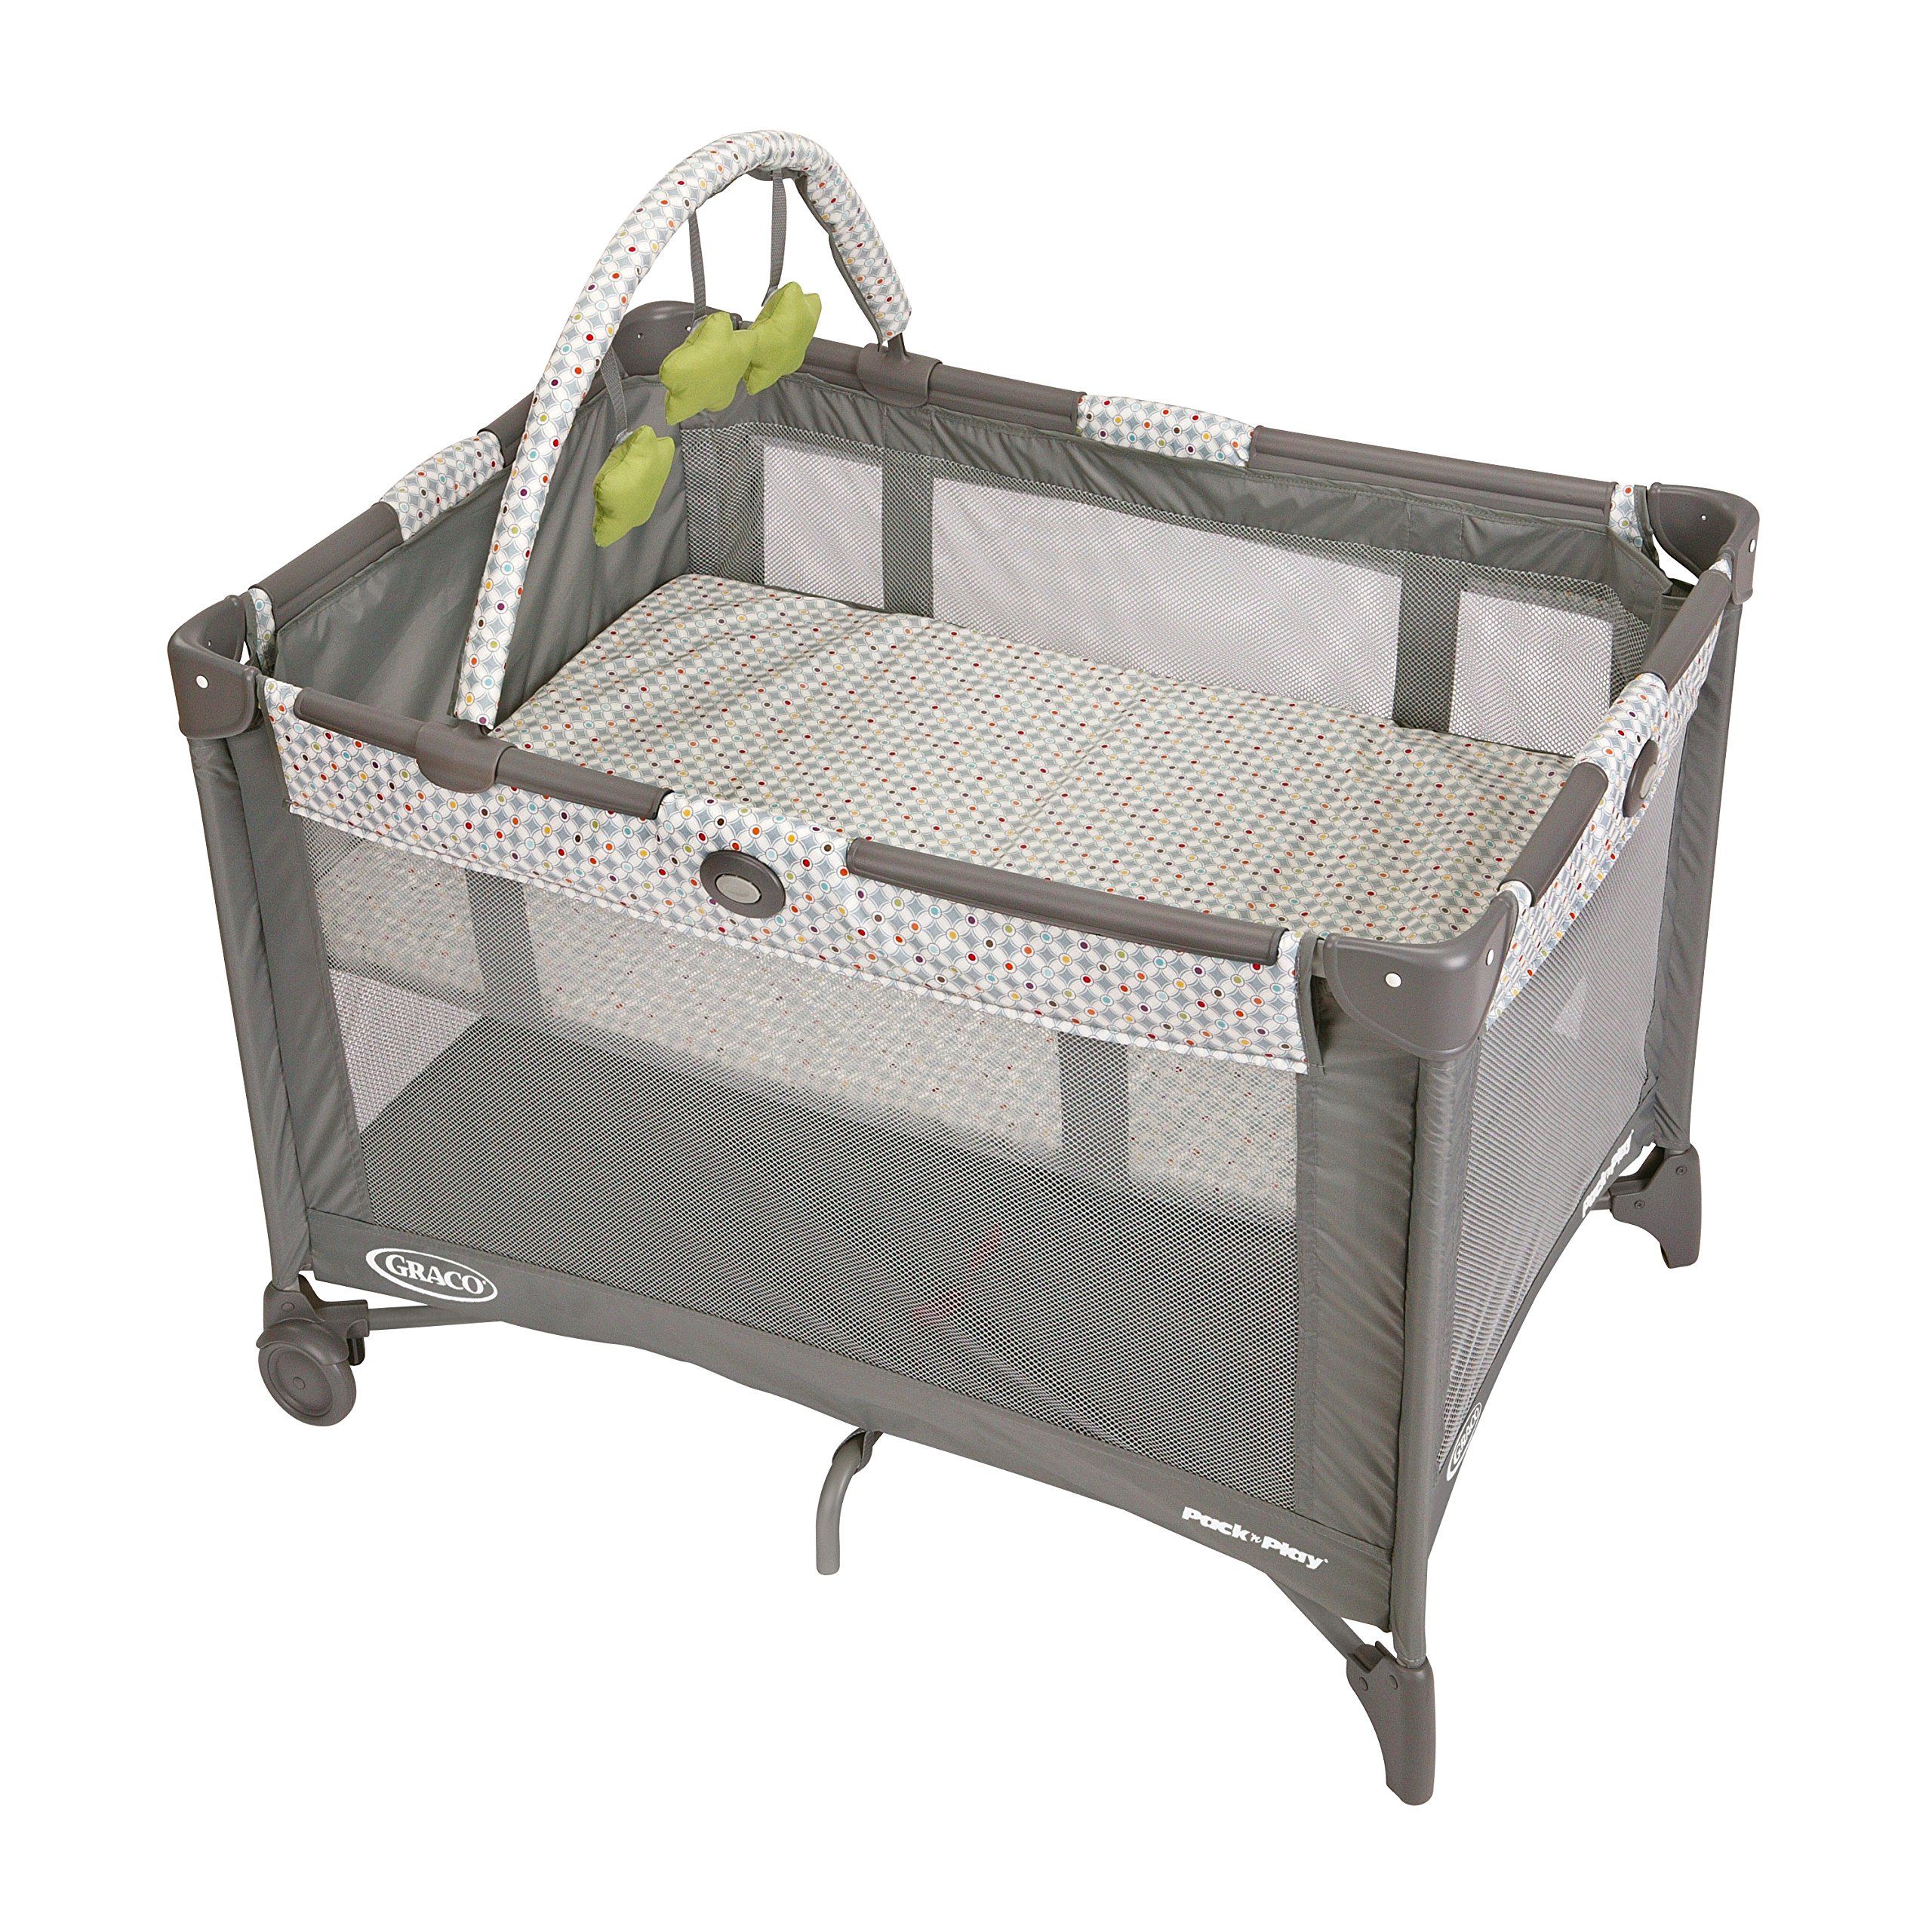 baby differences light playard for portable bjorn and now family between cribs crib guava the lotus travel